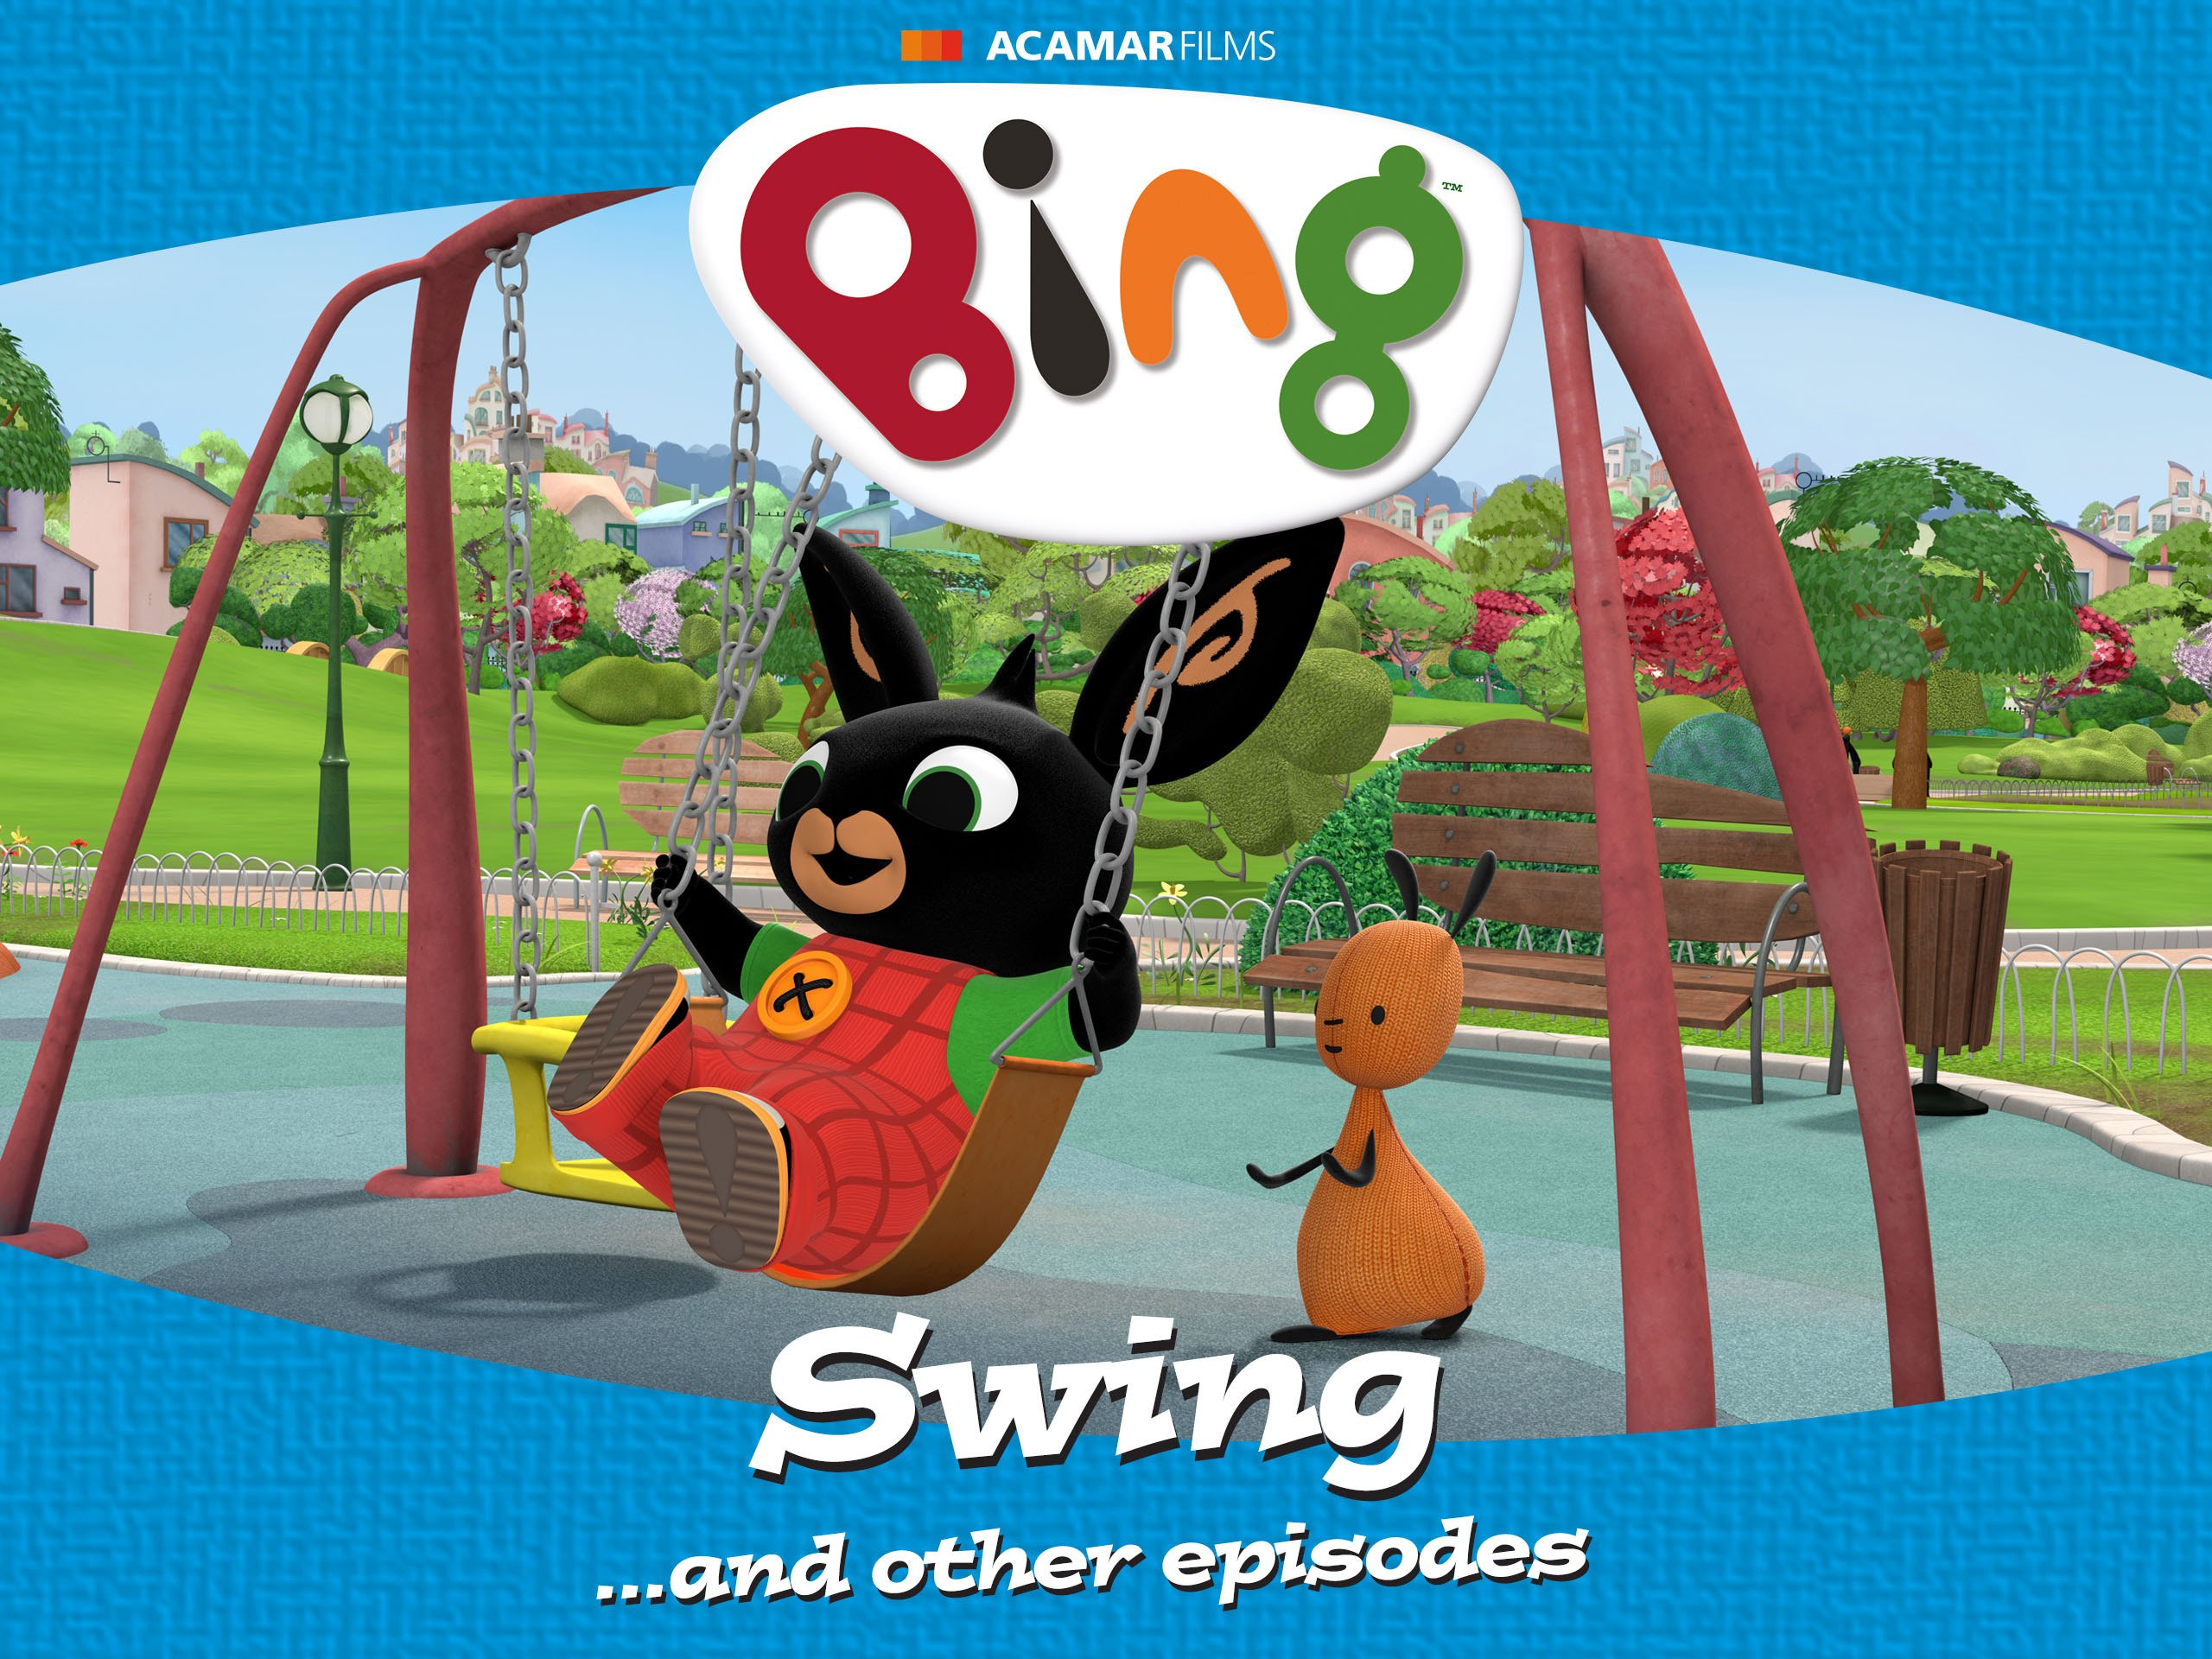 Bing Swing & Other Episodes